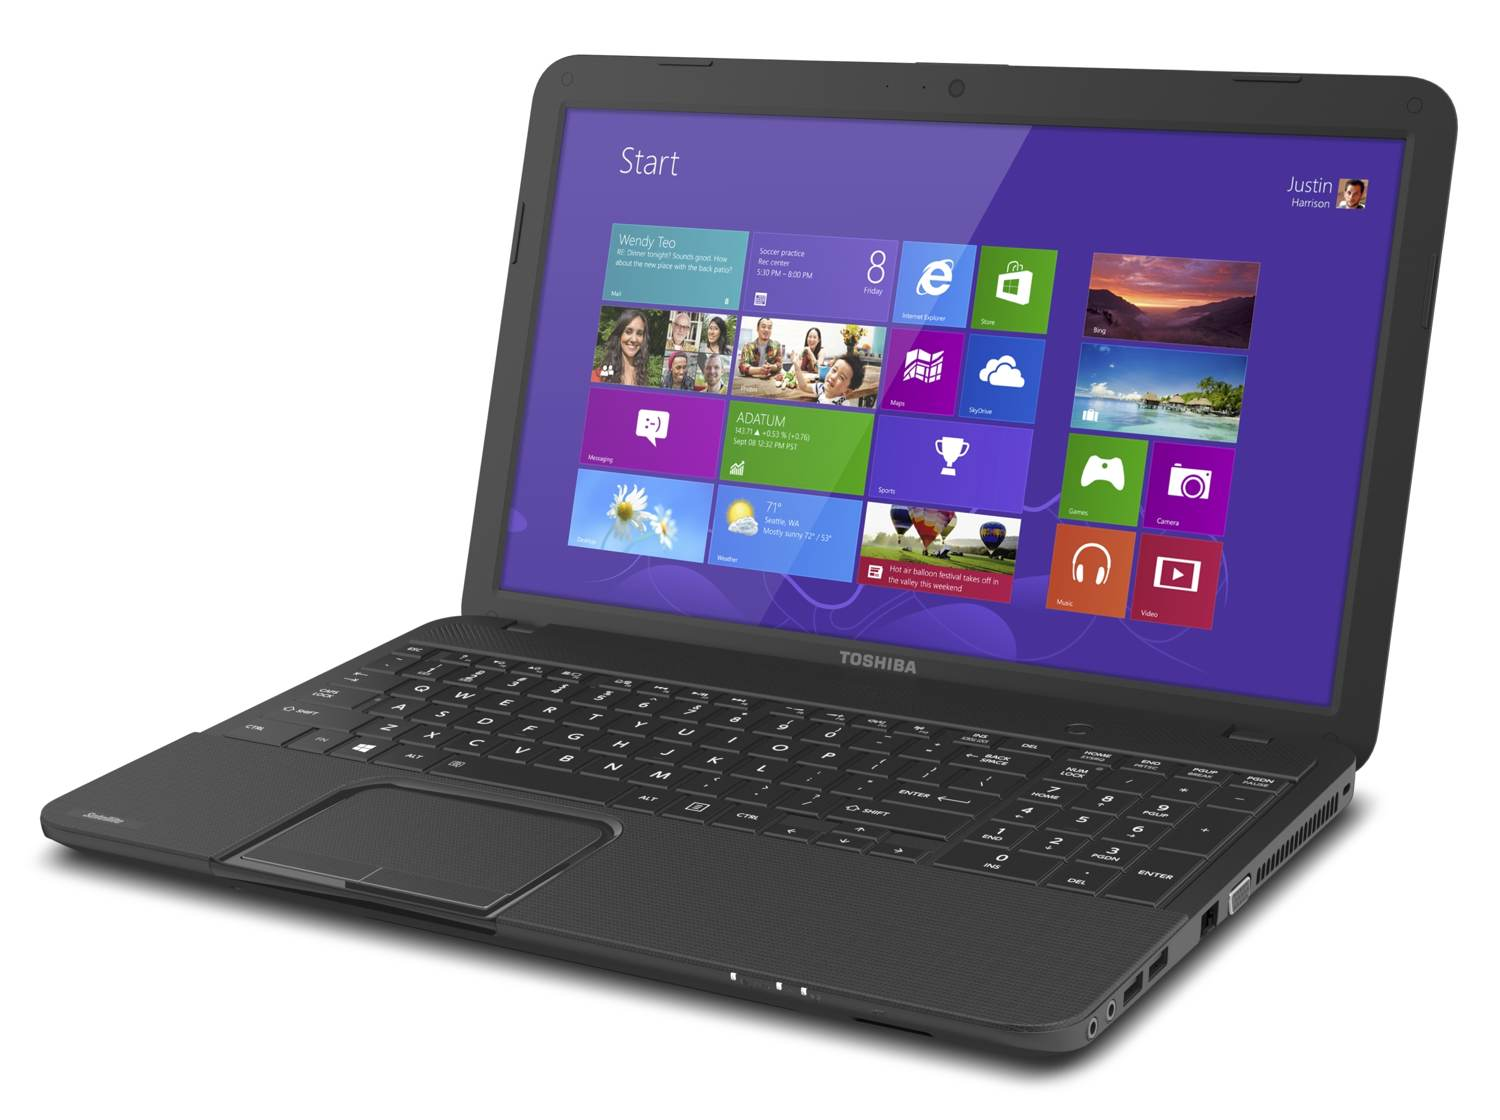 The toshiba satellite c855 powered by windows 8 view larger